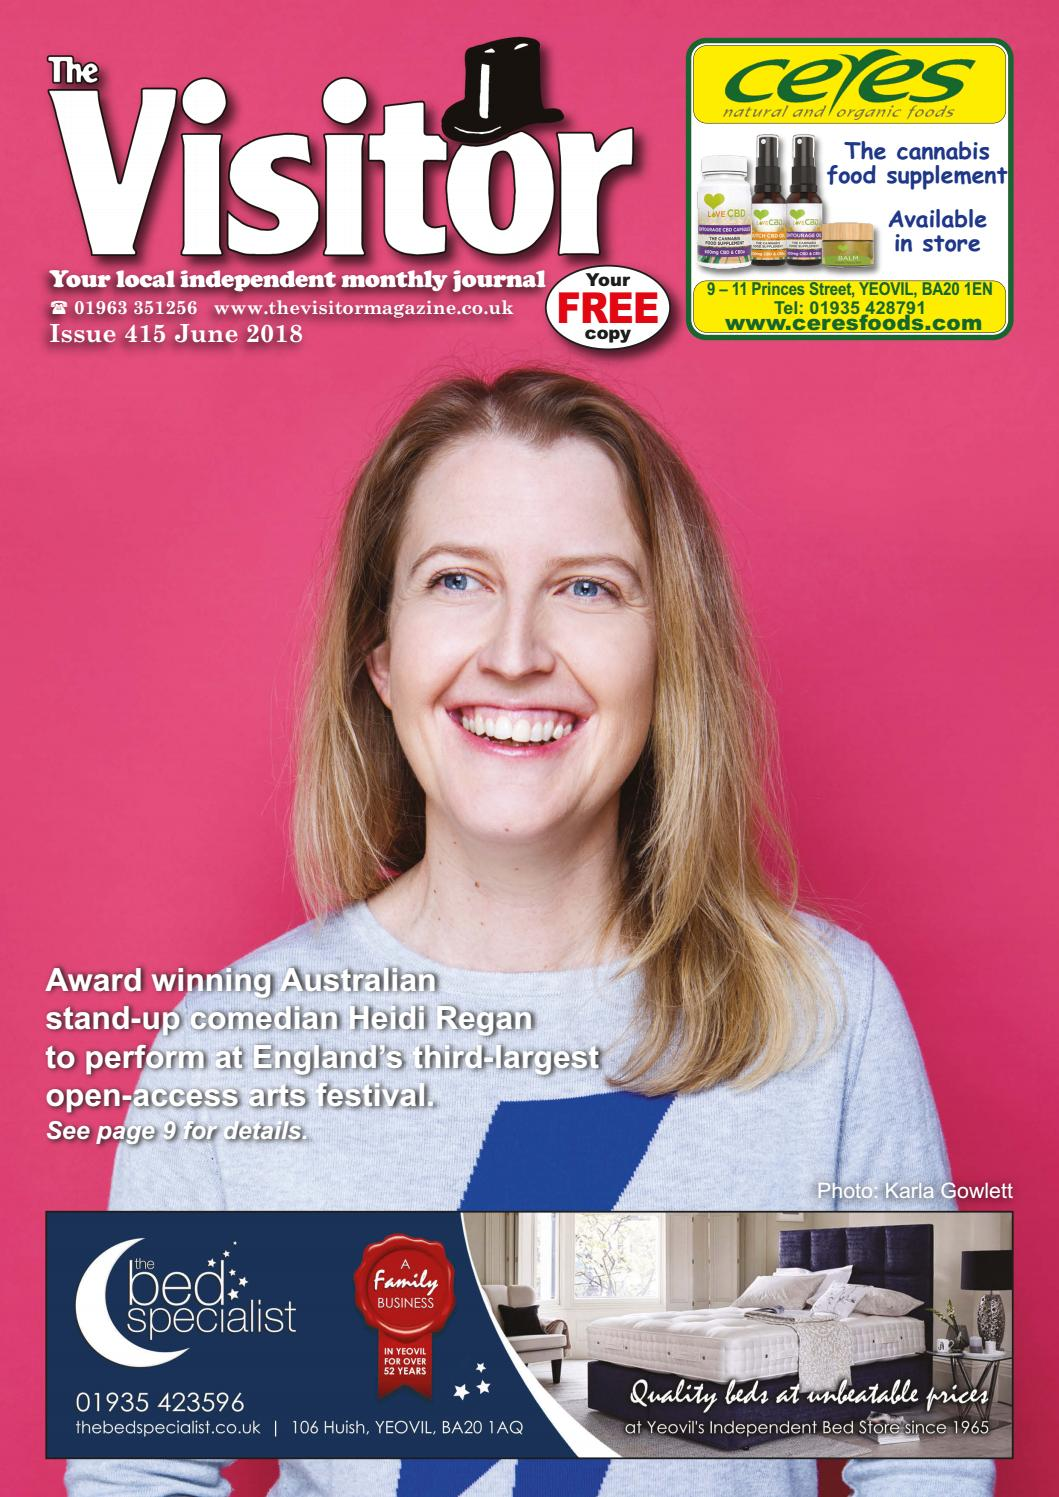 The Visitor Magazine Issue 415 June 2018 by The Visitor